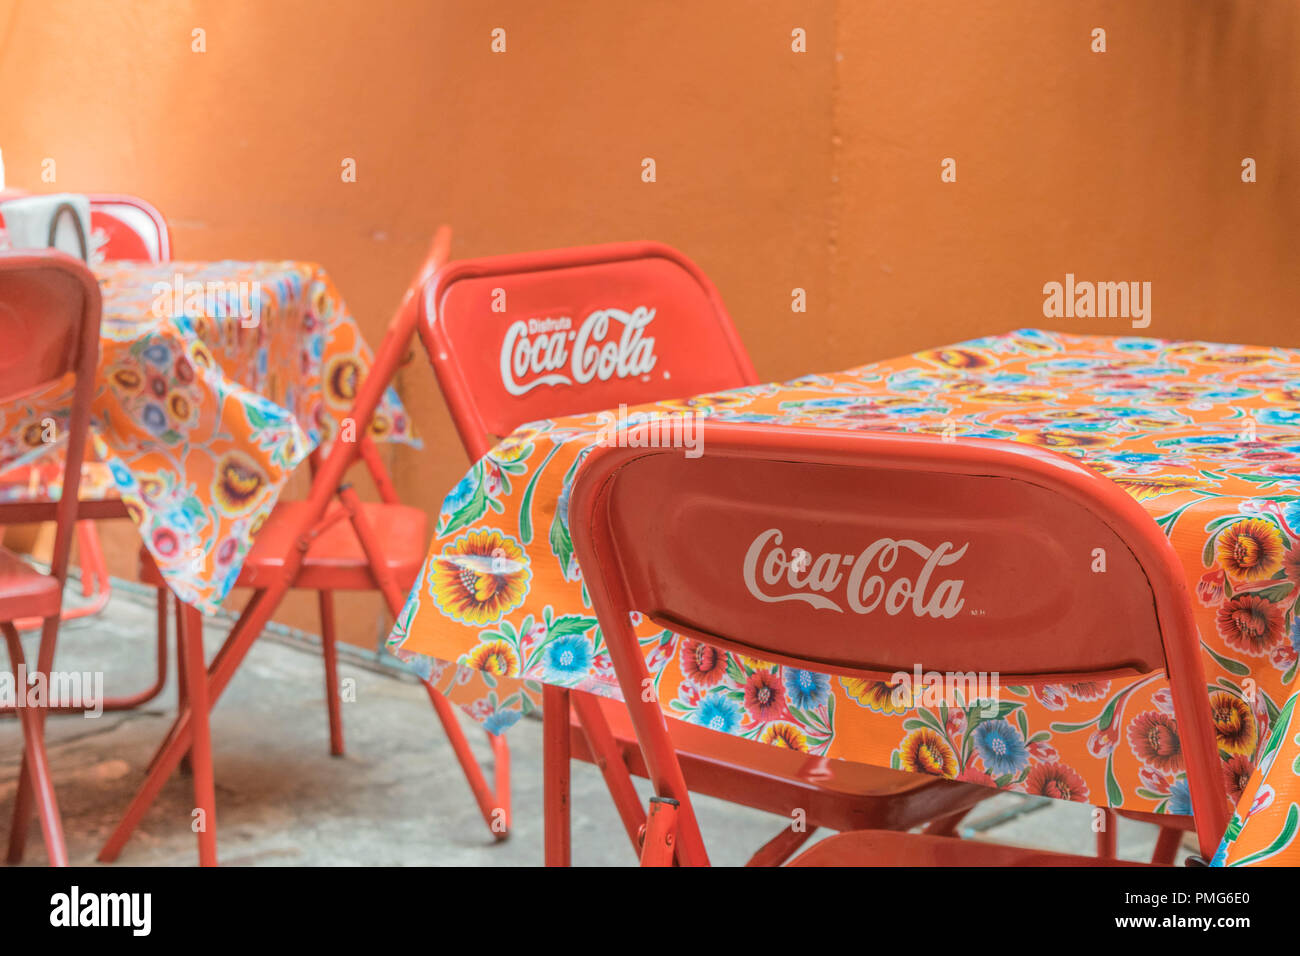 Interior restaurant with a stone floor, tables with bright flowery tablecloths, bright red metal chairs that say coca-cola and orange walls, in Mexico - Stock Image